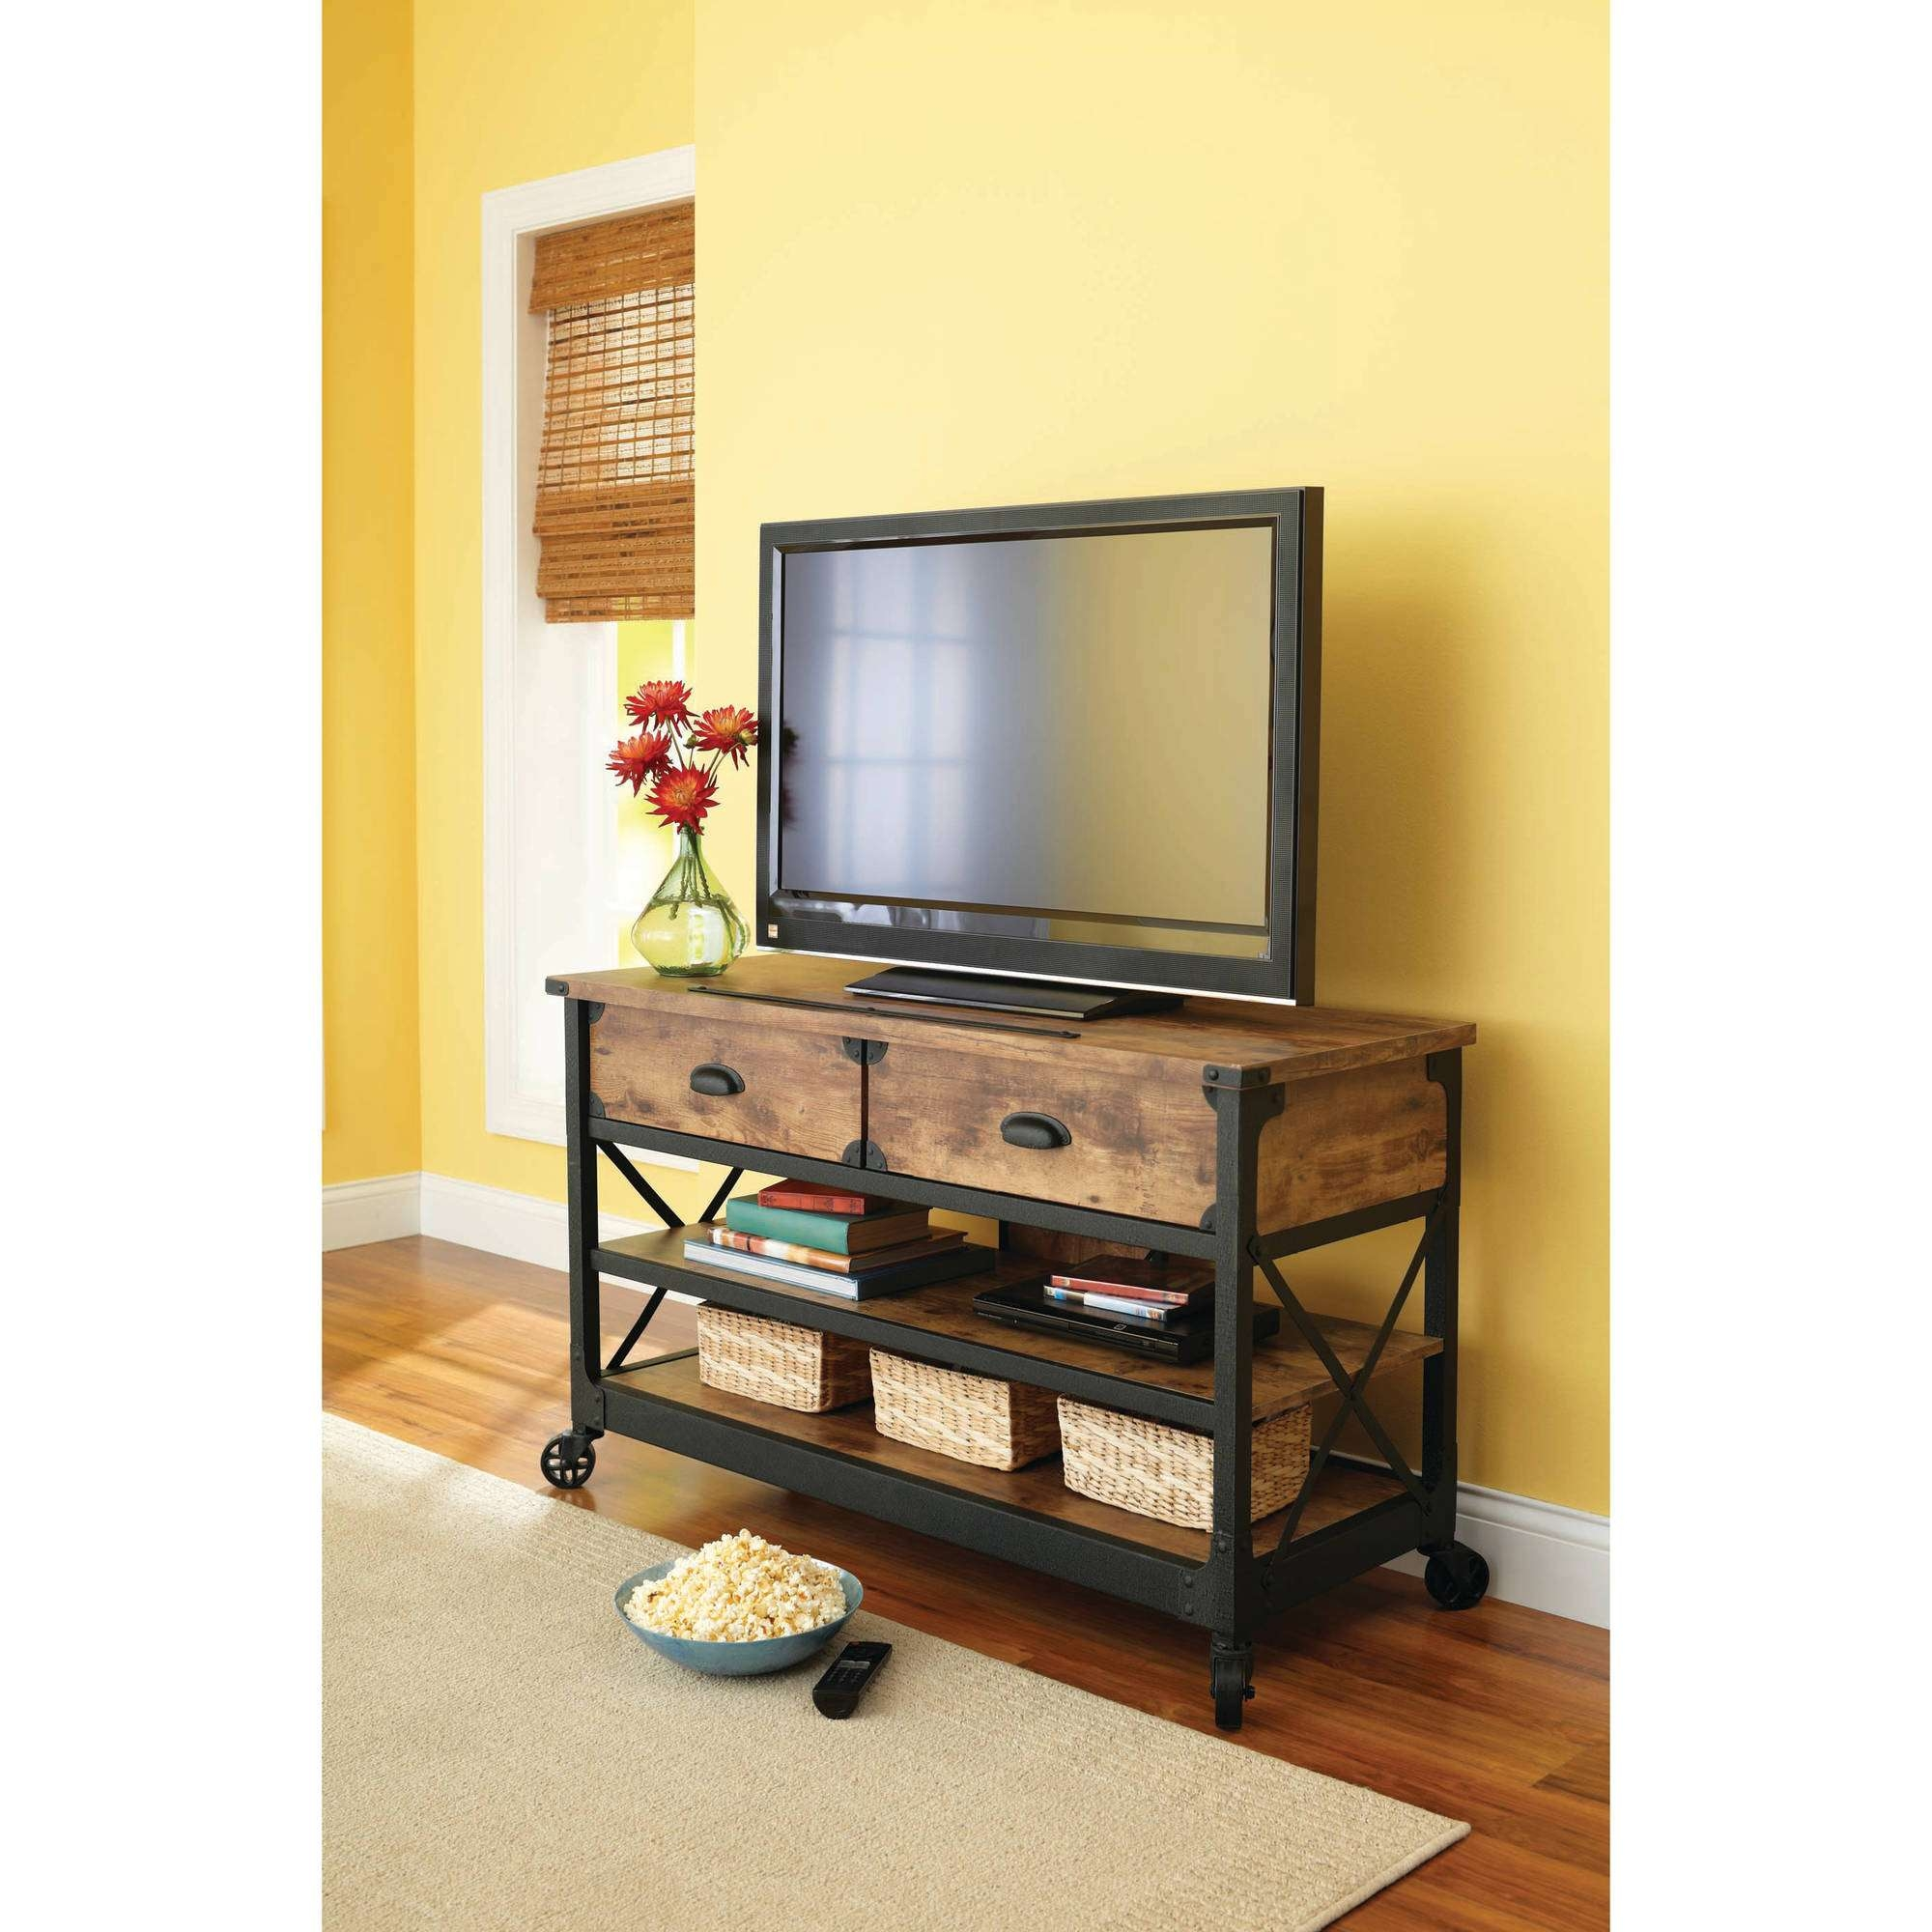 Better Homes And Gardens Rustic Country Antiqued Black/pine Panel For Corner Tv Stands With Drawers (View 1 of 15)